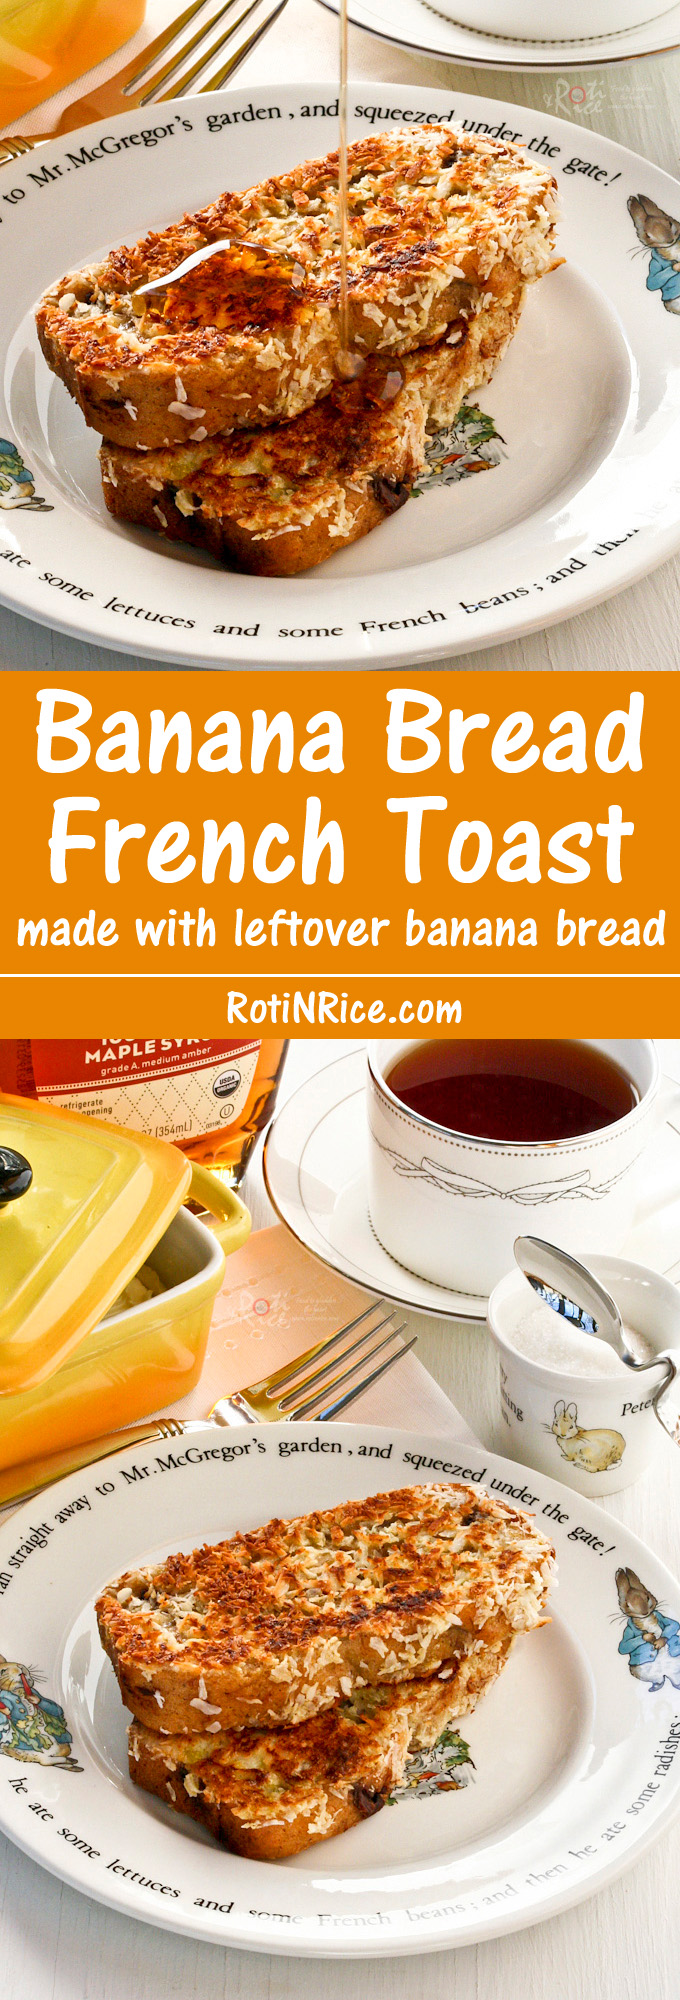 Make this Banana Bread French Toast for a weekend breakfast treat or dessert. It is so fragrant and delicious. You will not be disappointed! | RotiNRice.com